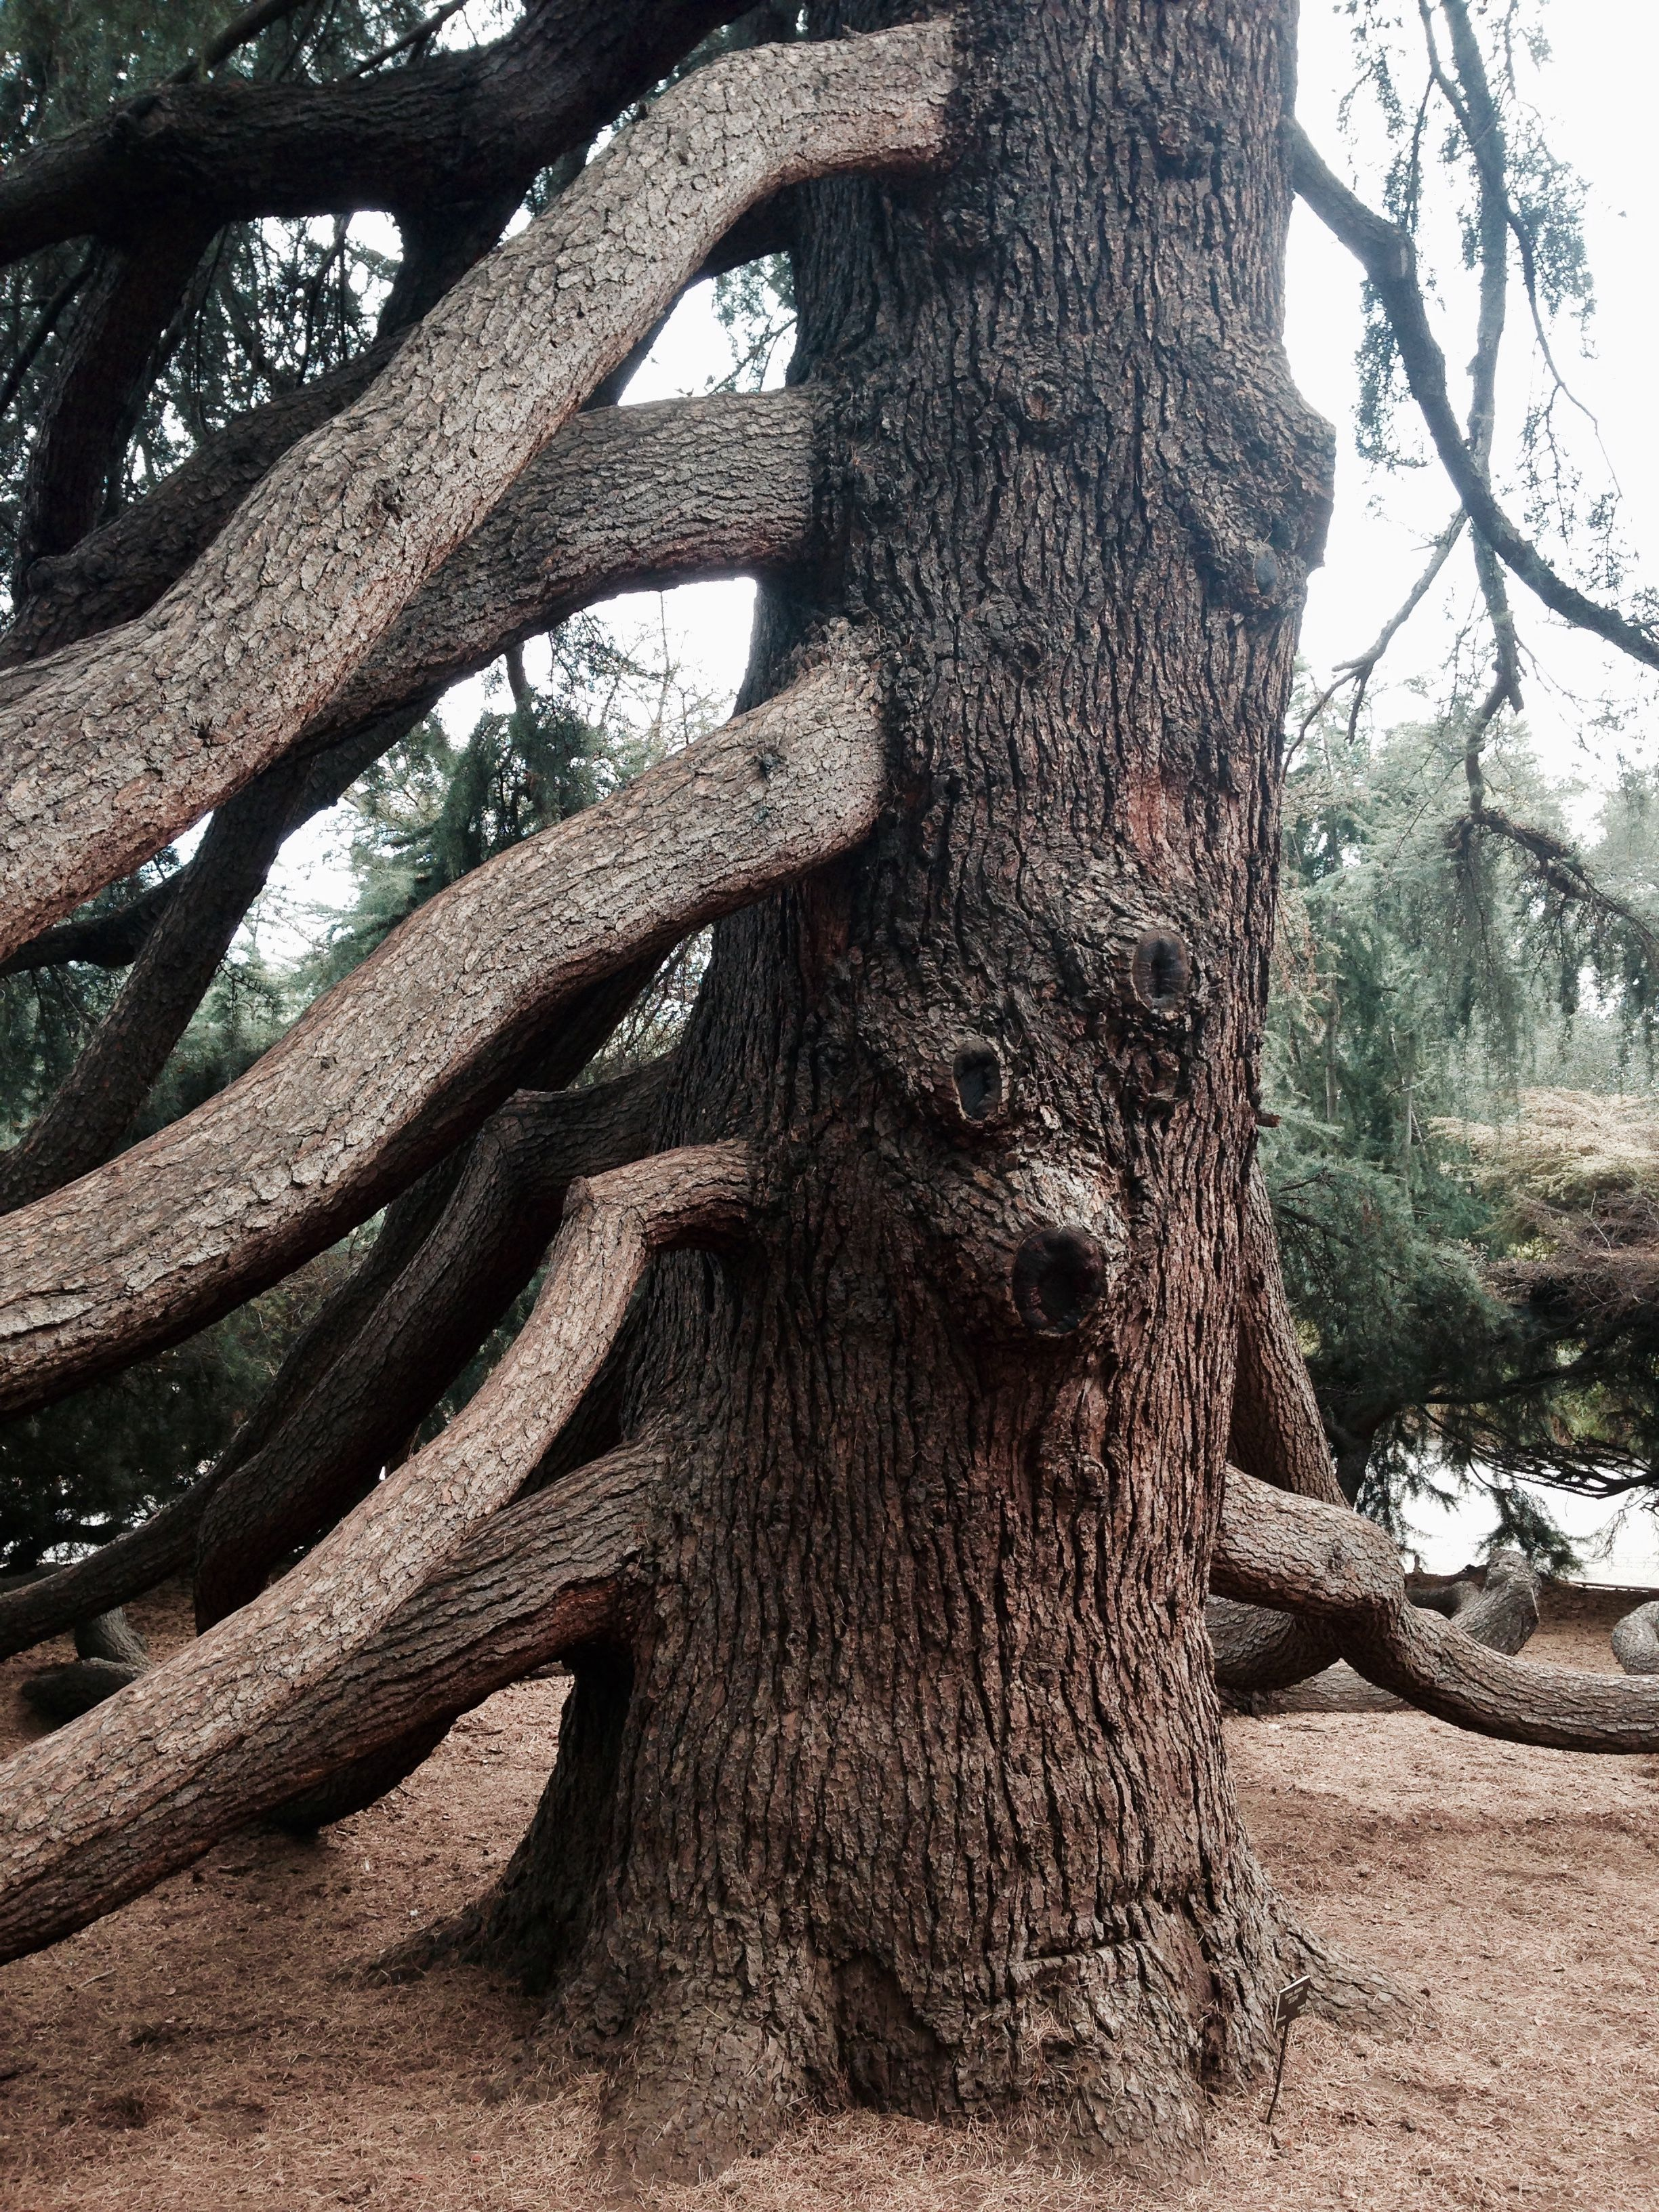 Pin By Wolf70 On Bomen Weird Trees Ancient Tree Nature Tree